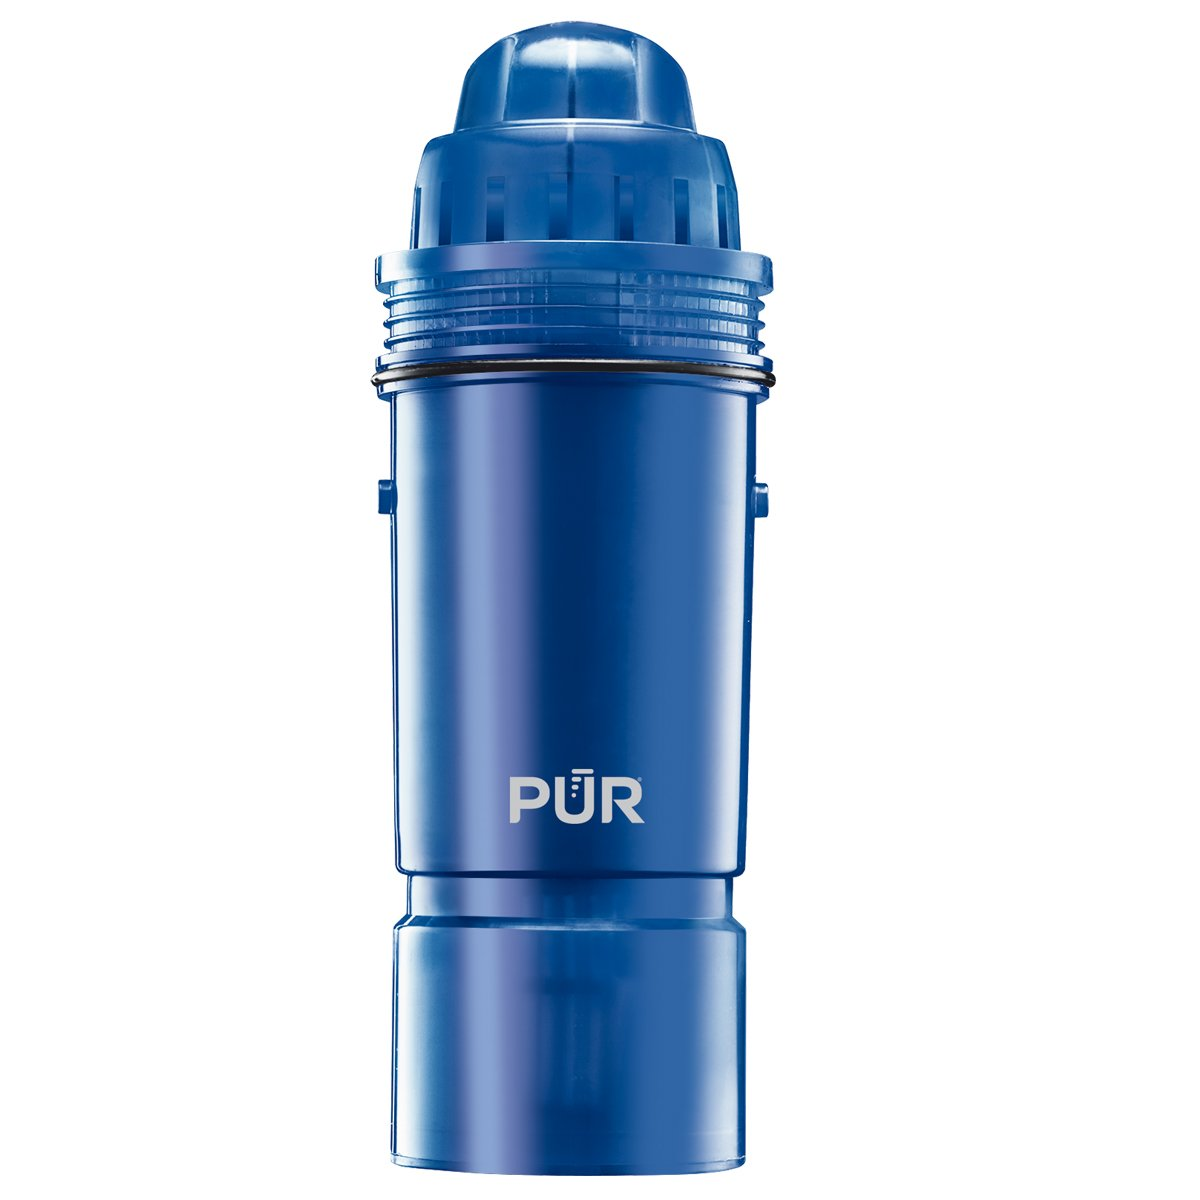 PUR CRF950Z Genuine Replacement Filter for  Pitcher Water Filtration System (Pack of 2) by PUR